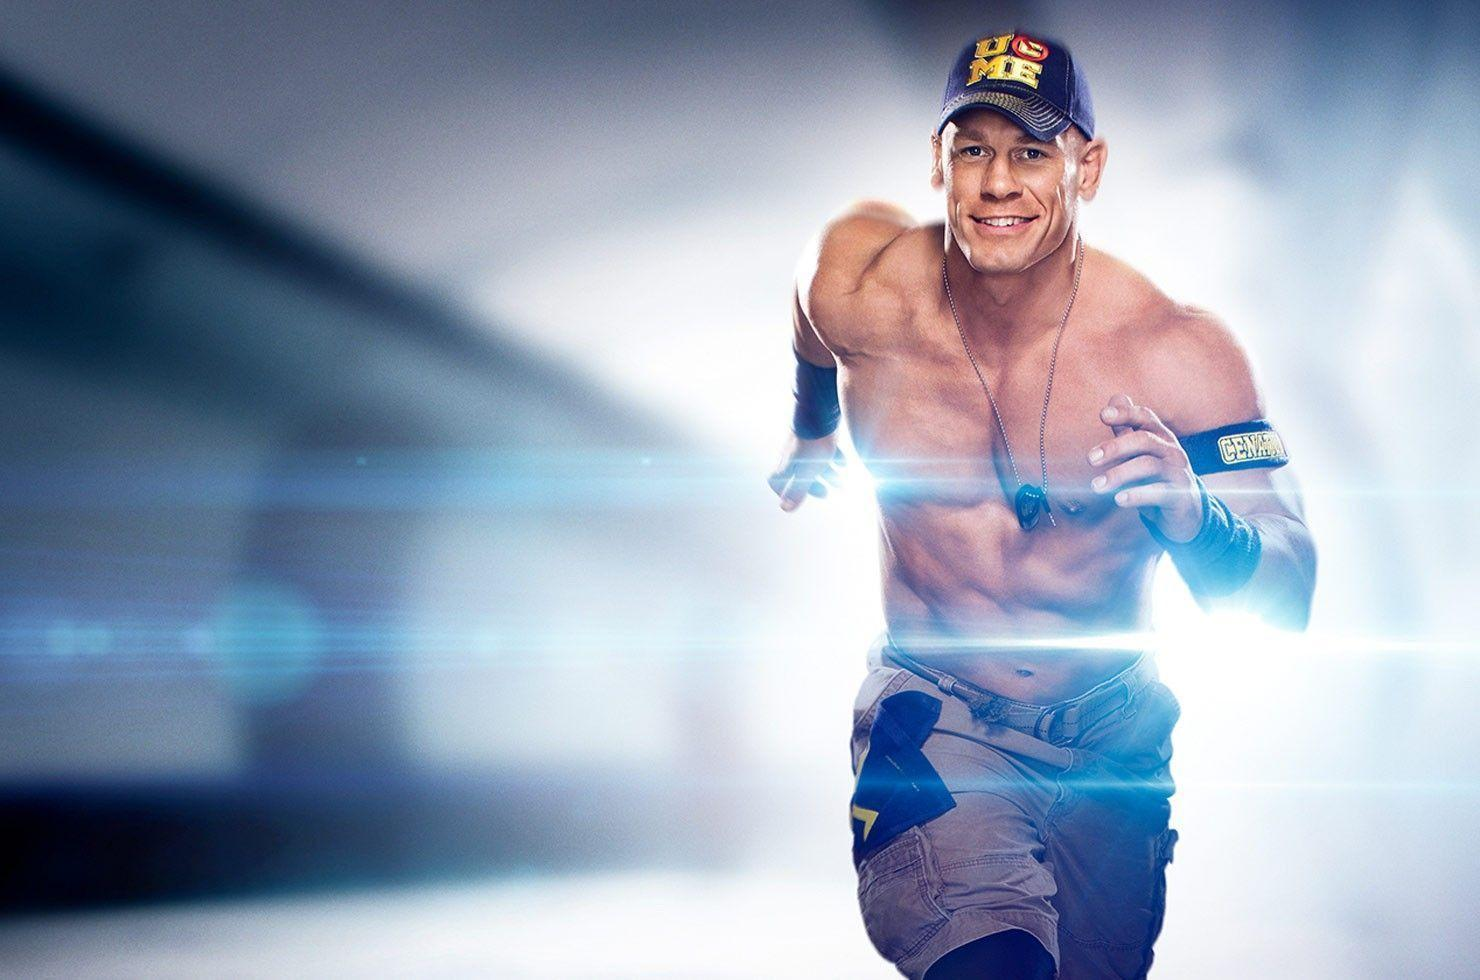 johncena hd wallpapers 2016 wallpaper cave